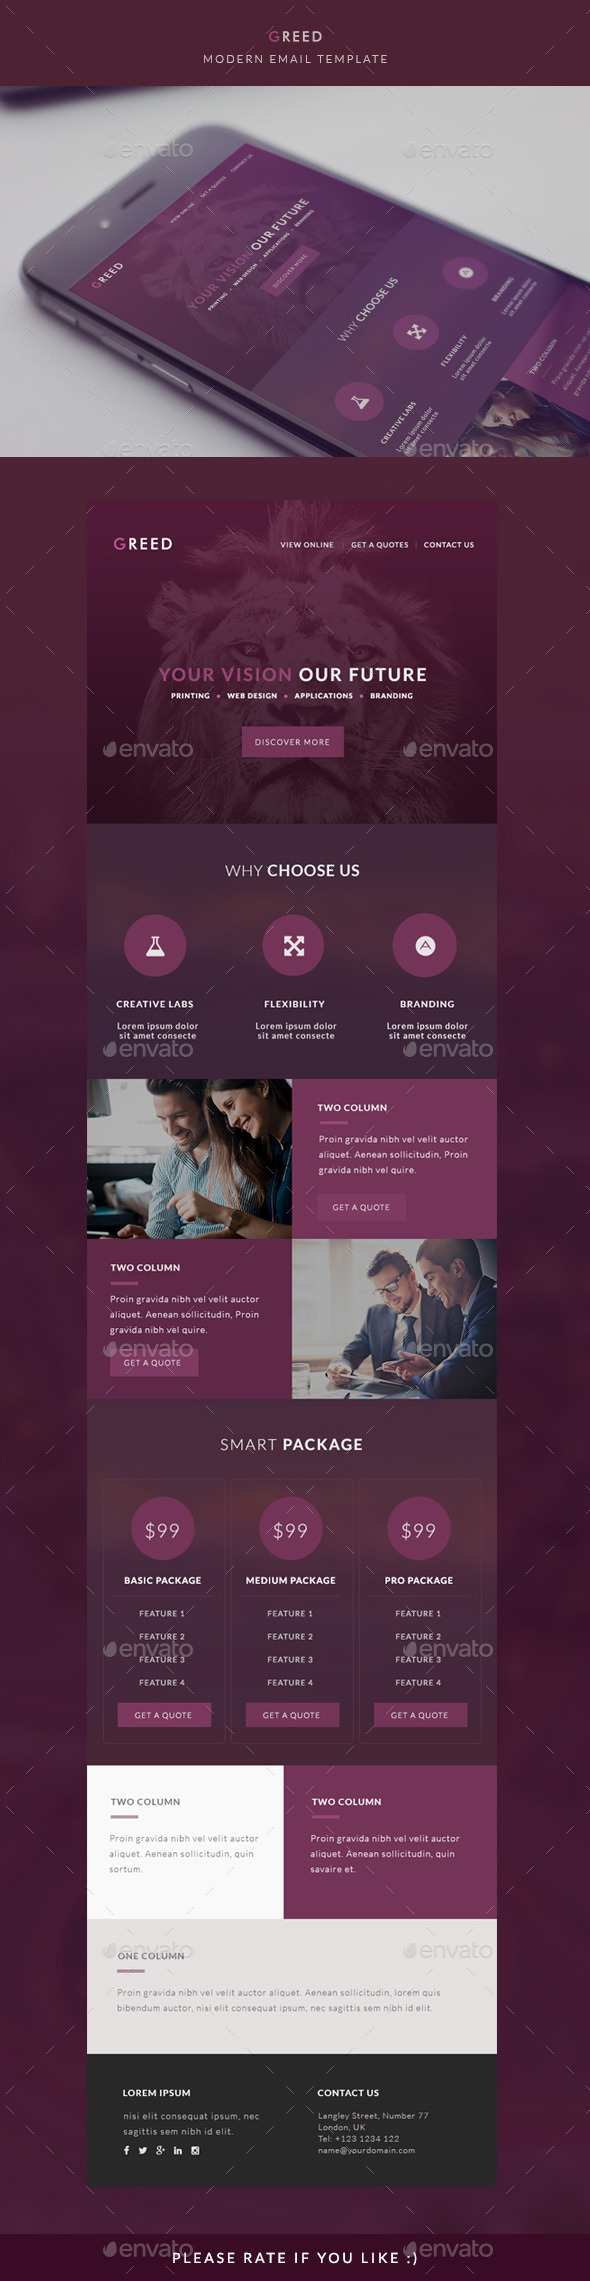 GraphicRiver Modern Email Template GREED 10459482